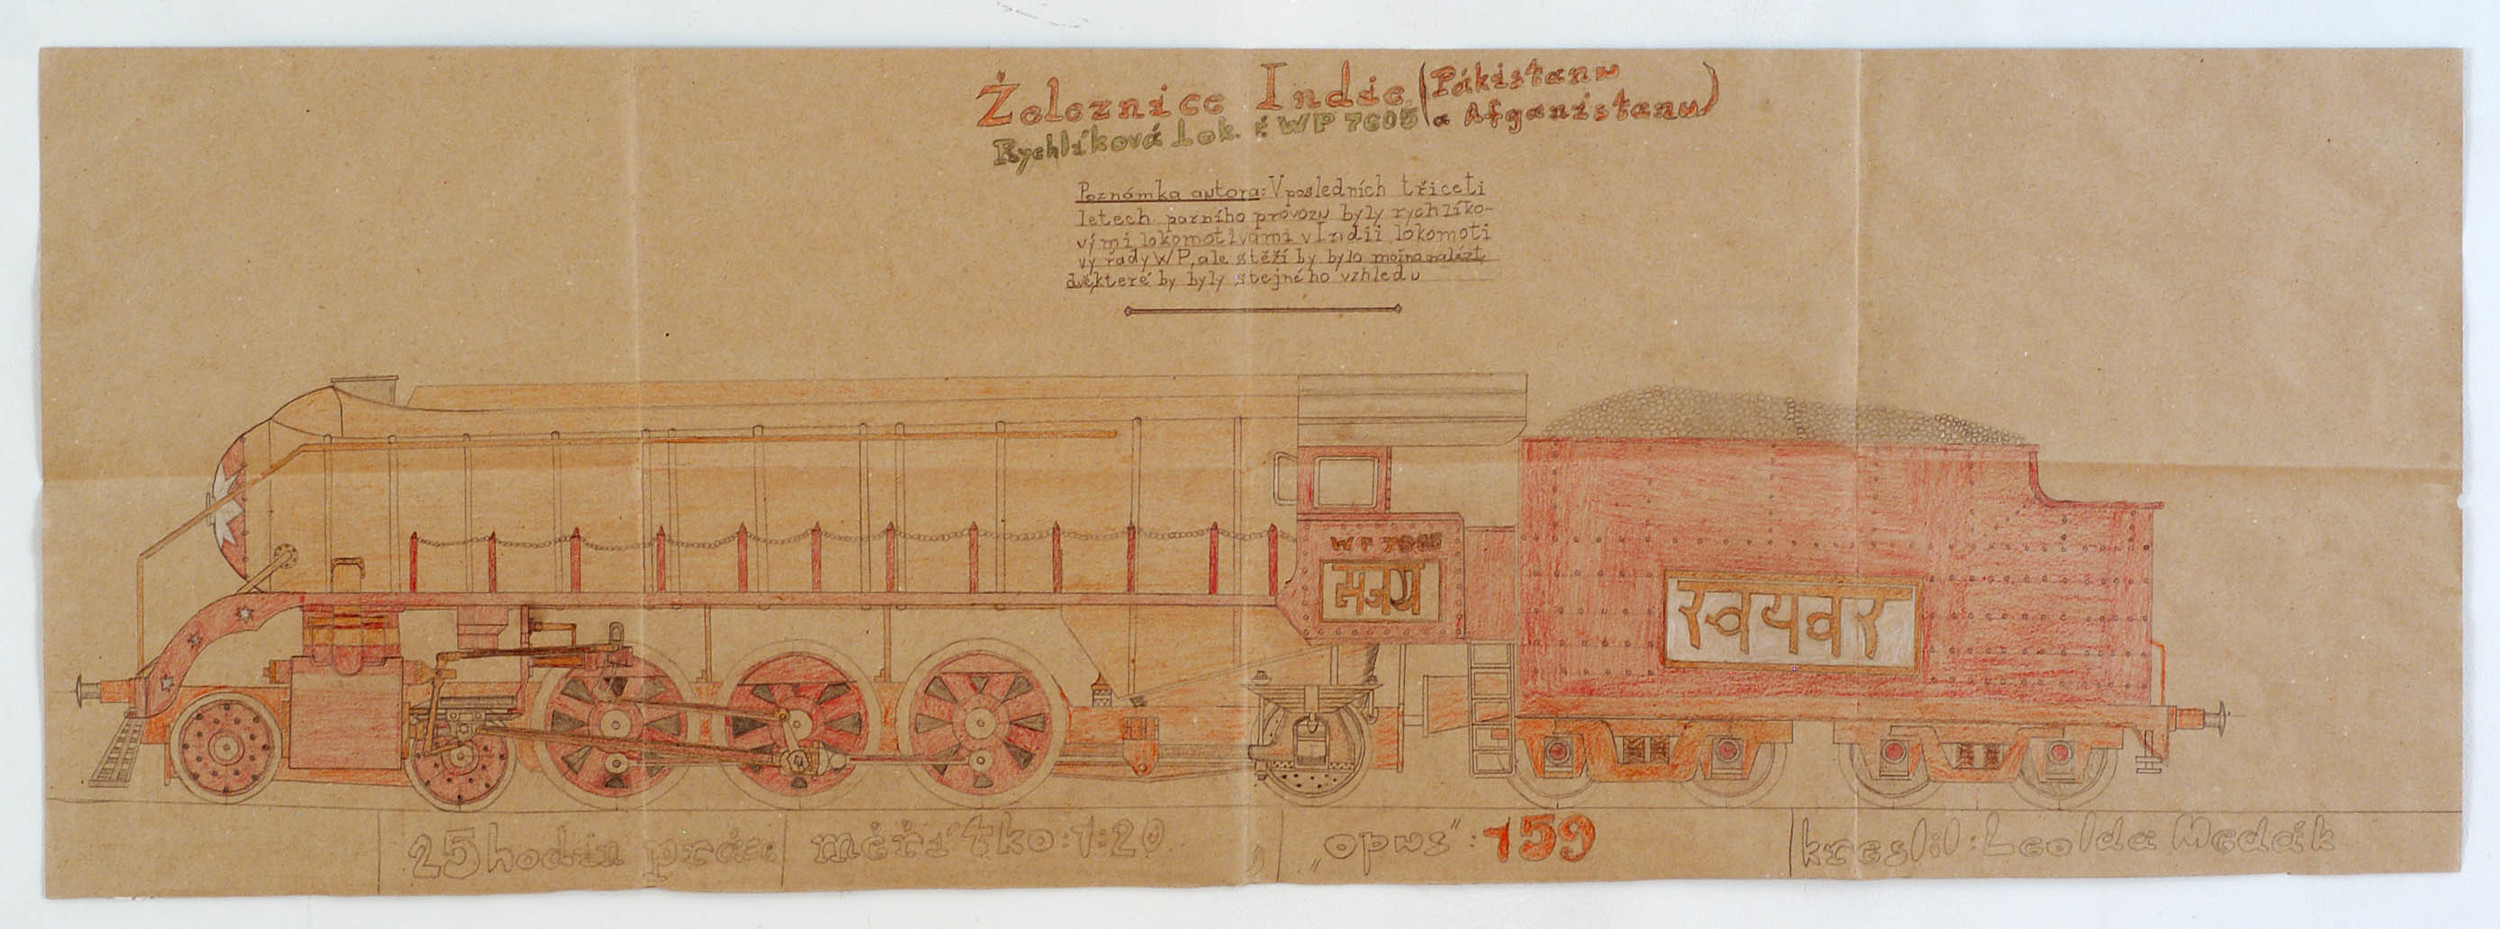 Leos Wertheimer    Opus 159, Zoloznice India  , nd Graphite, colored pencil/paper 18 x 51.25 in  /  45.7 x 130.2 cm  /  LWer 1